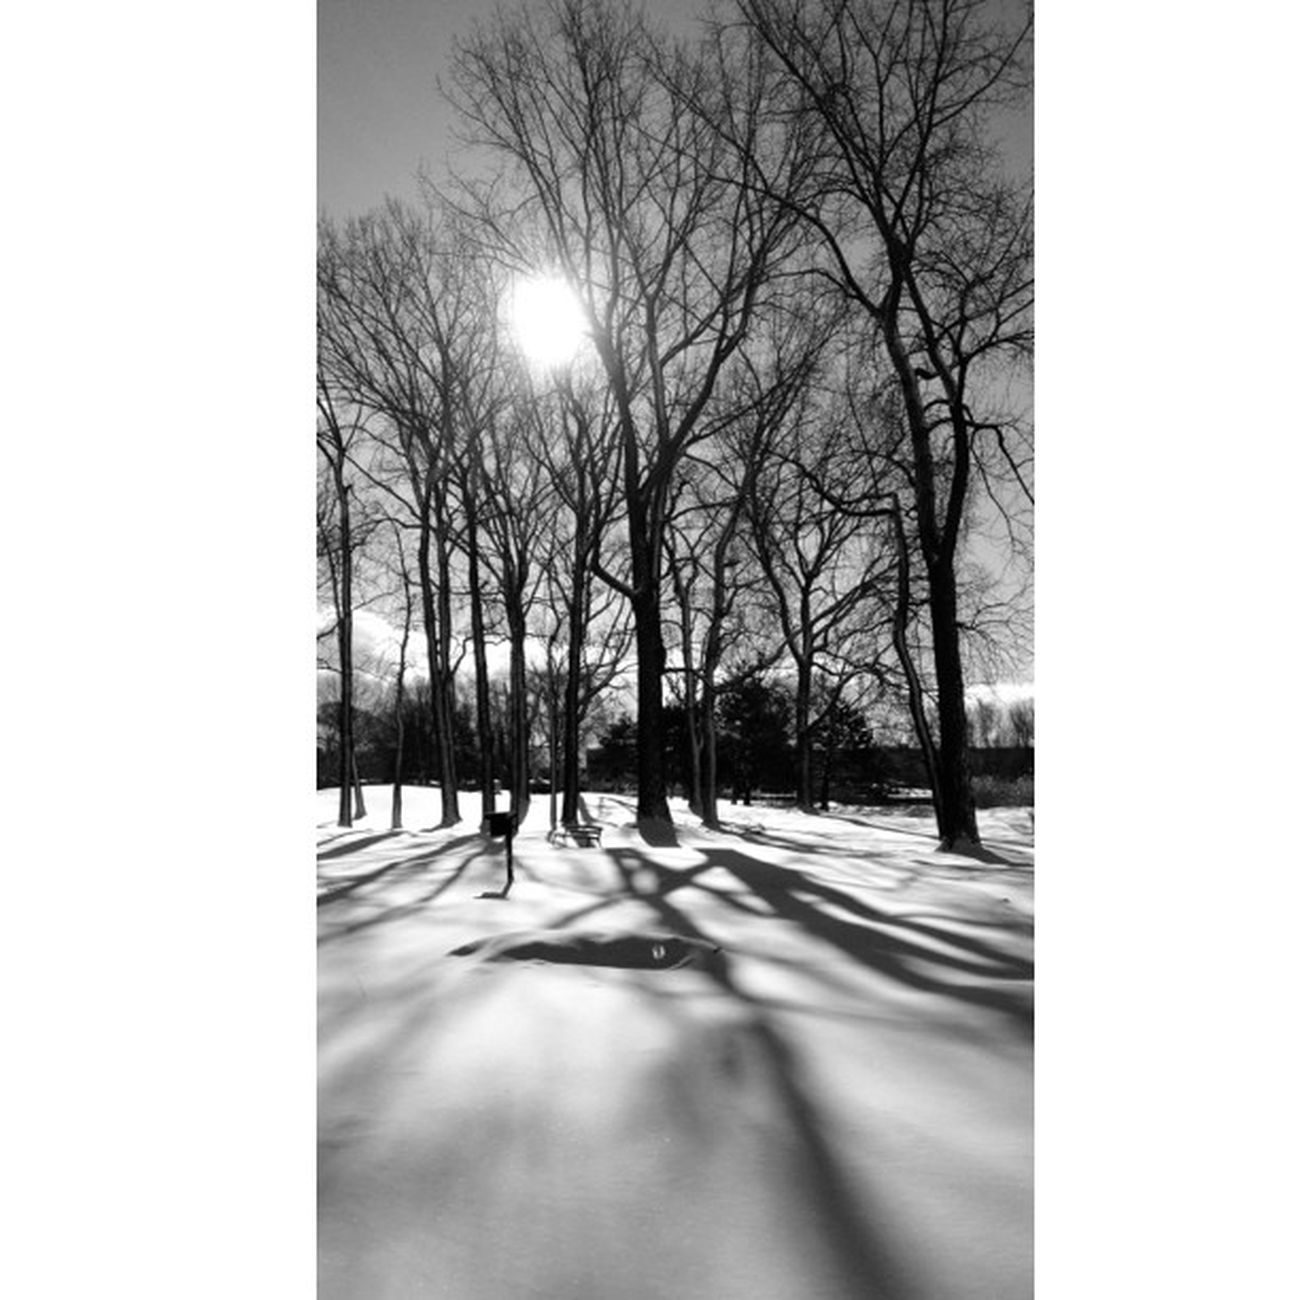 The full version of my Long Shadows pic. In cropped thanks to lopez689 and her app suggestion. Thank you. #bw #bnw #bw_lovers #blackandwhite #bnw_life Mdbw Treeporn_challenge Blackandwhite Only_greyscale Bw Ig_pornclick Bnw All_shots Bws_worldwide Bw_lovers Irox_bw Royalsnappingartists Ic_trees Bnw_worldwide Bnw_life Luremein Unsung_masters Branching_out